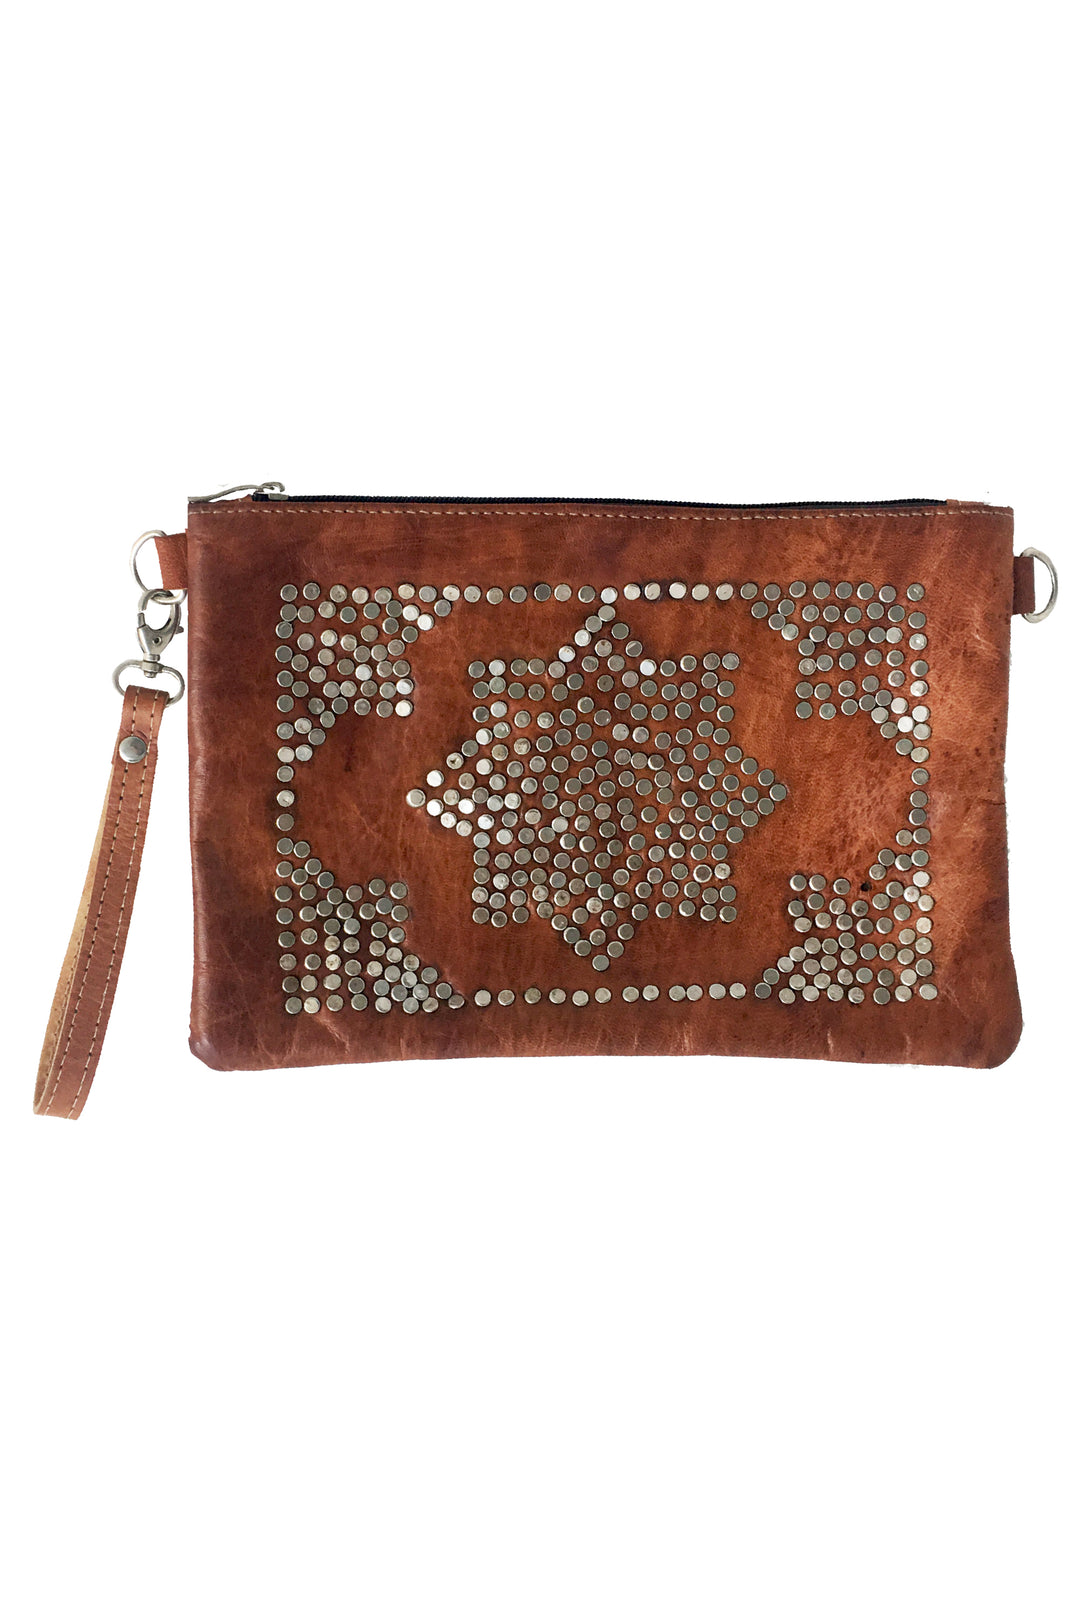 Marrakech leather studded clutch bag (2nds)